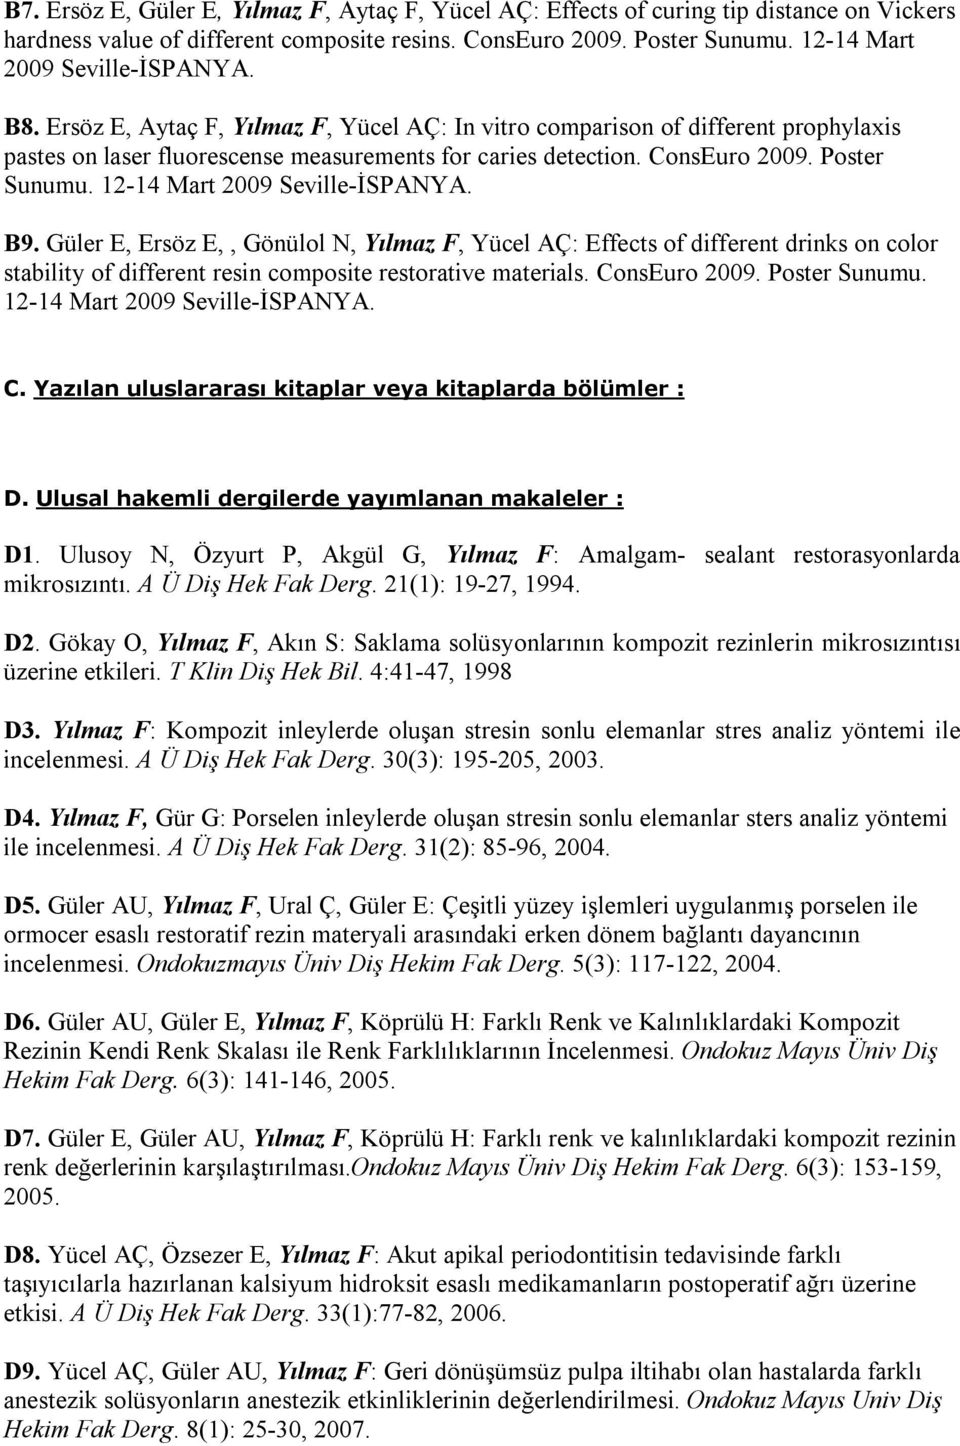 Poster Sunumu. 12-14 Mart 2009 Seville-İSPANYA. B9. Güler E, Ersöz E,, Gönülol N, Yılmaz F, Yücel AÇ: Effects of different drinks on color stability of different resin composite restorative materials.